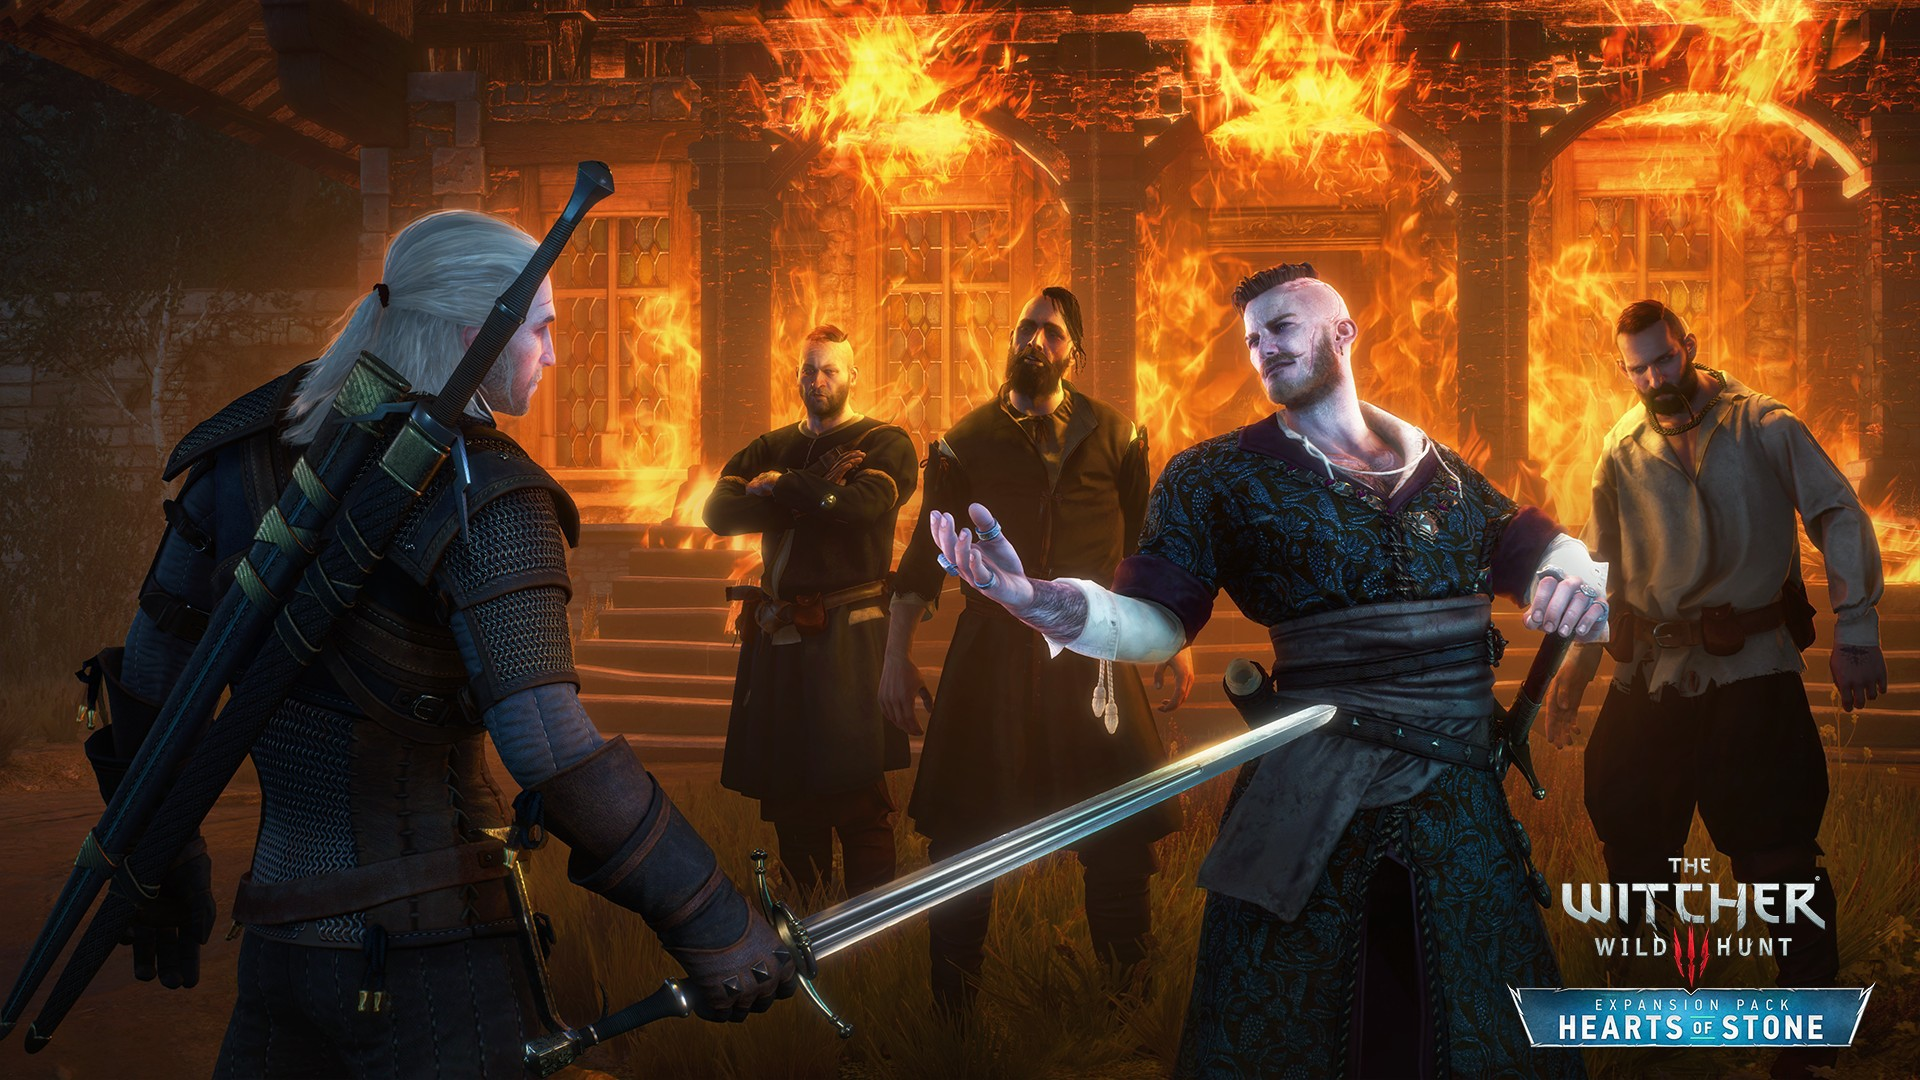 The Witcher 3: Wild Hunt - All News | Games @ IndieWatch